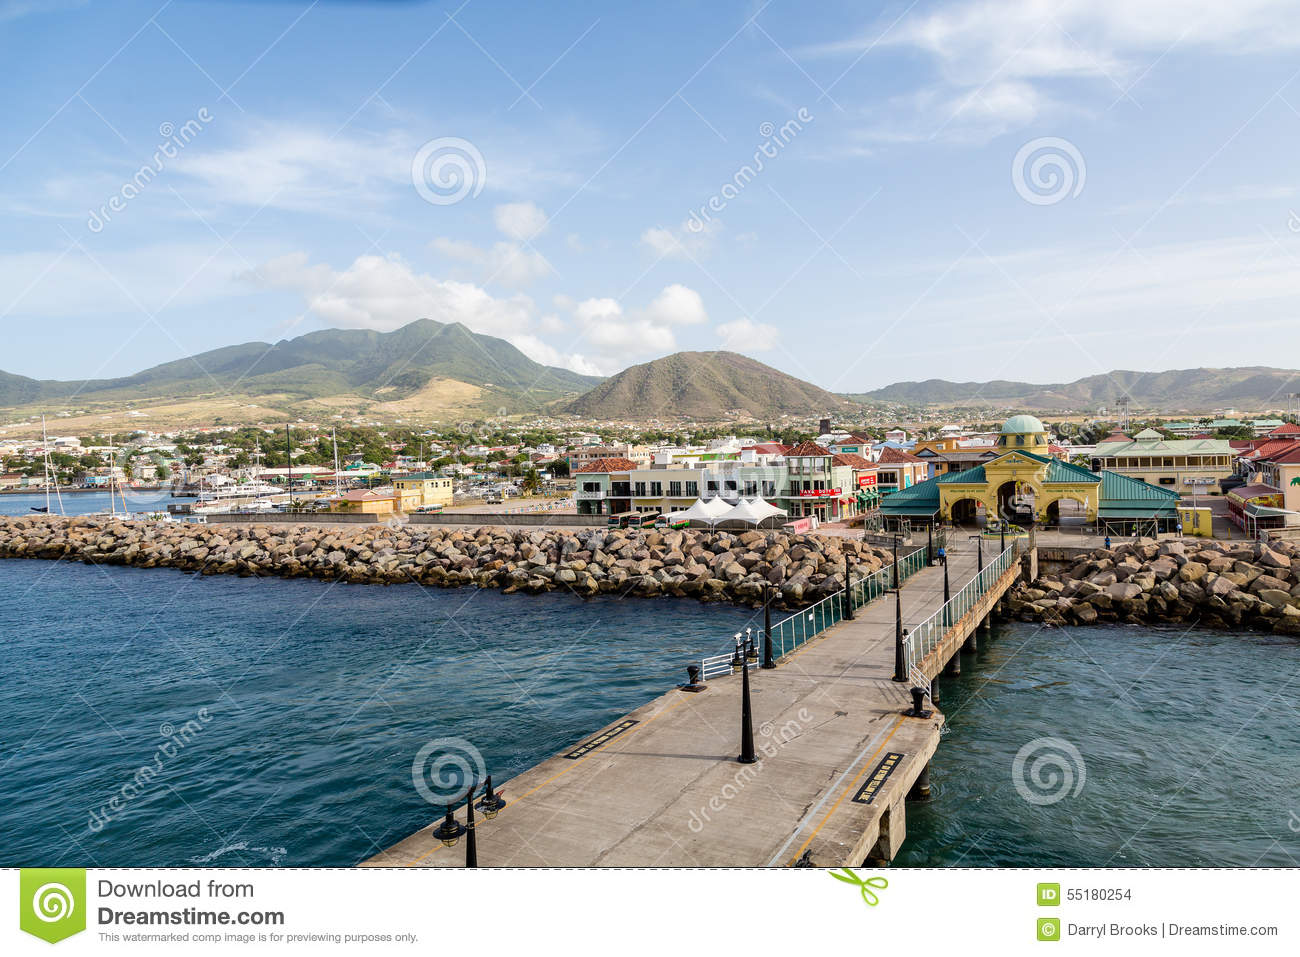 Port zante on st kitts by pier editorial stock image image of coastline boats 55180254 for Port zante st kitts